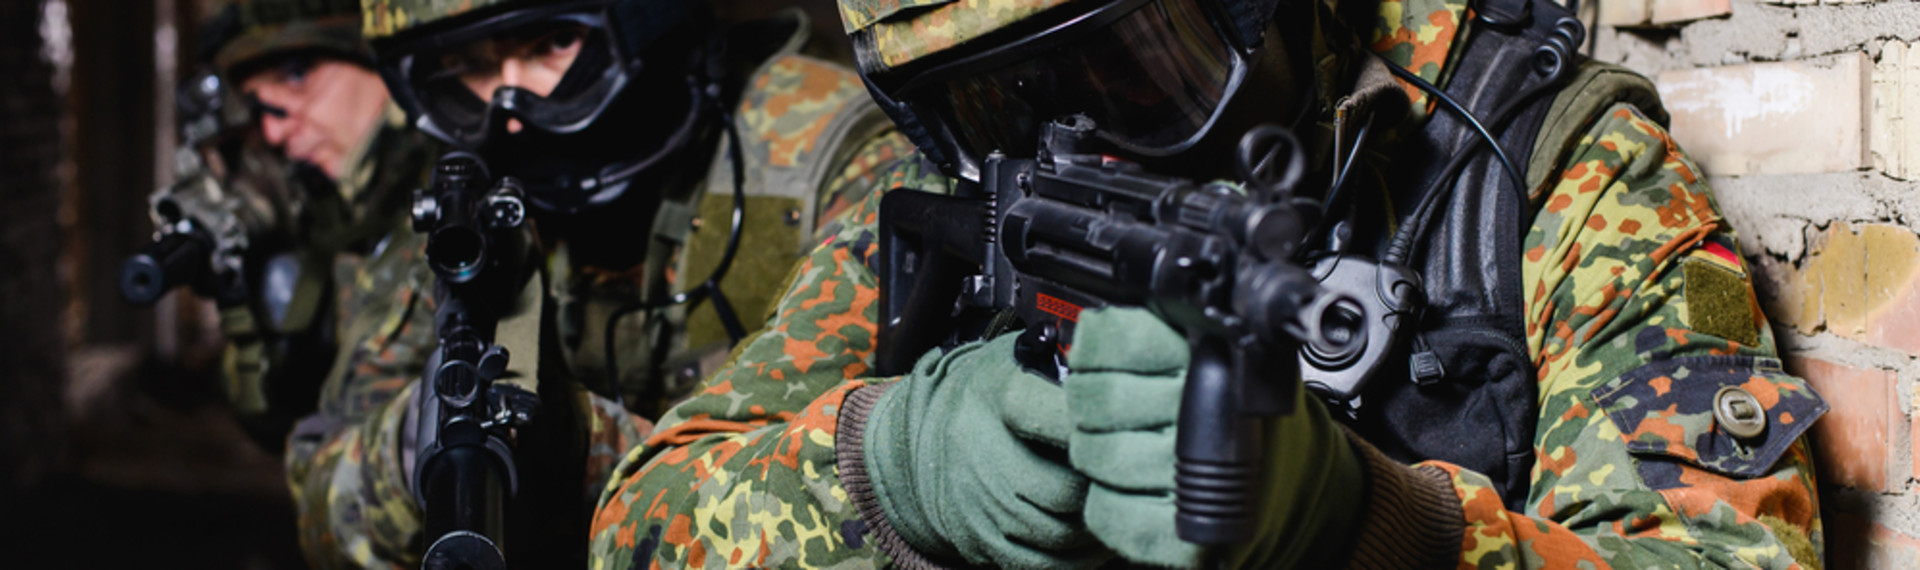 Warsaw Special Forces Shooting image